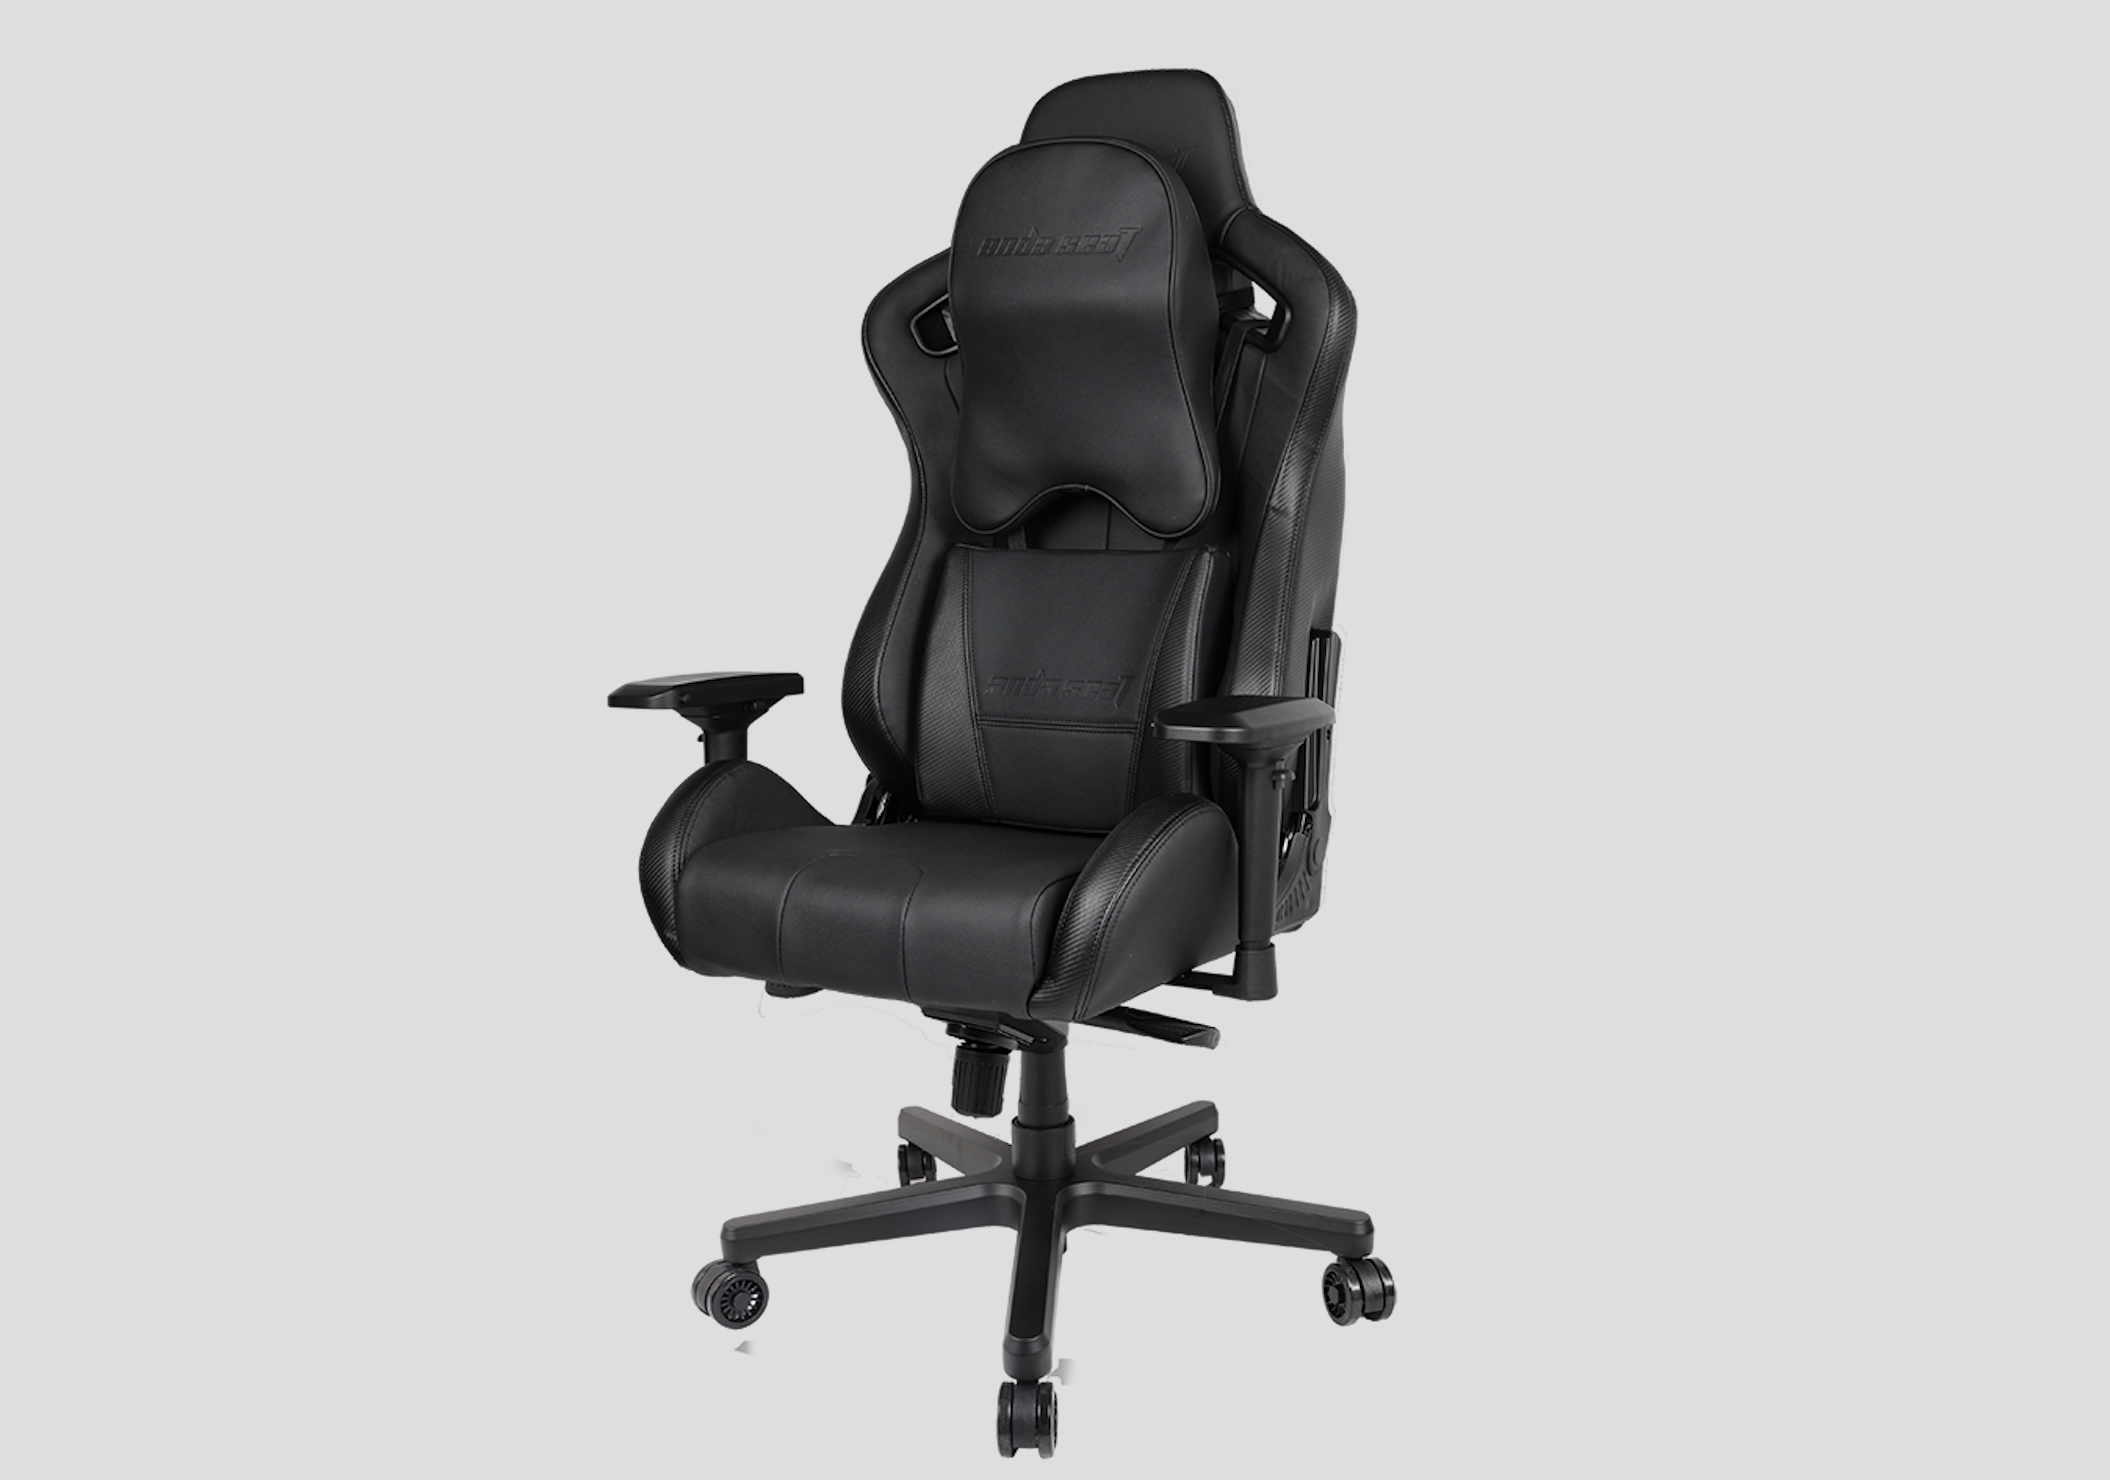 Anda Seat, Chair, Gaming Chair